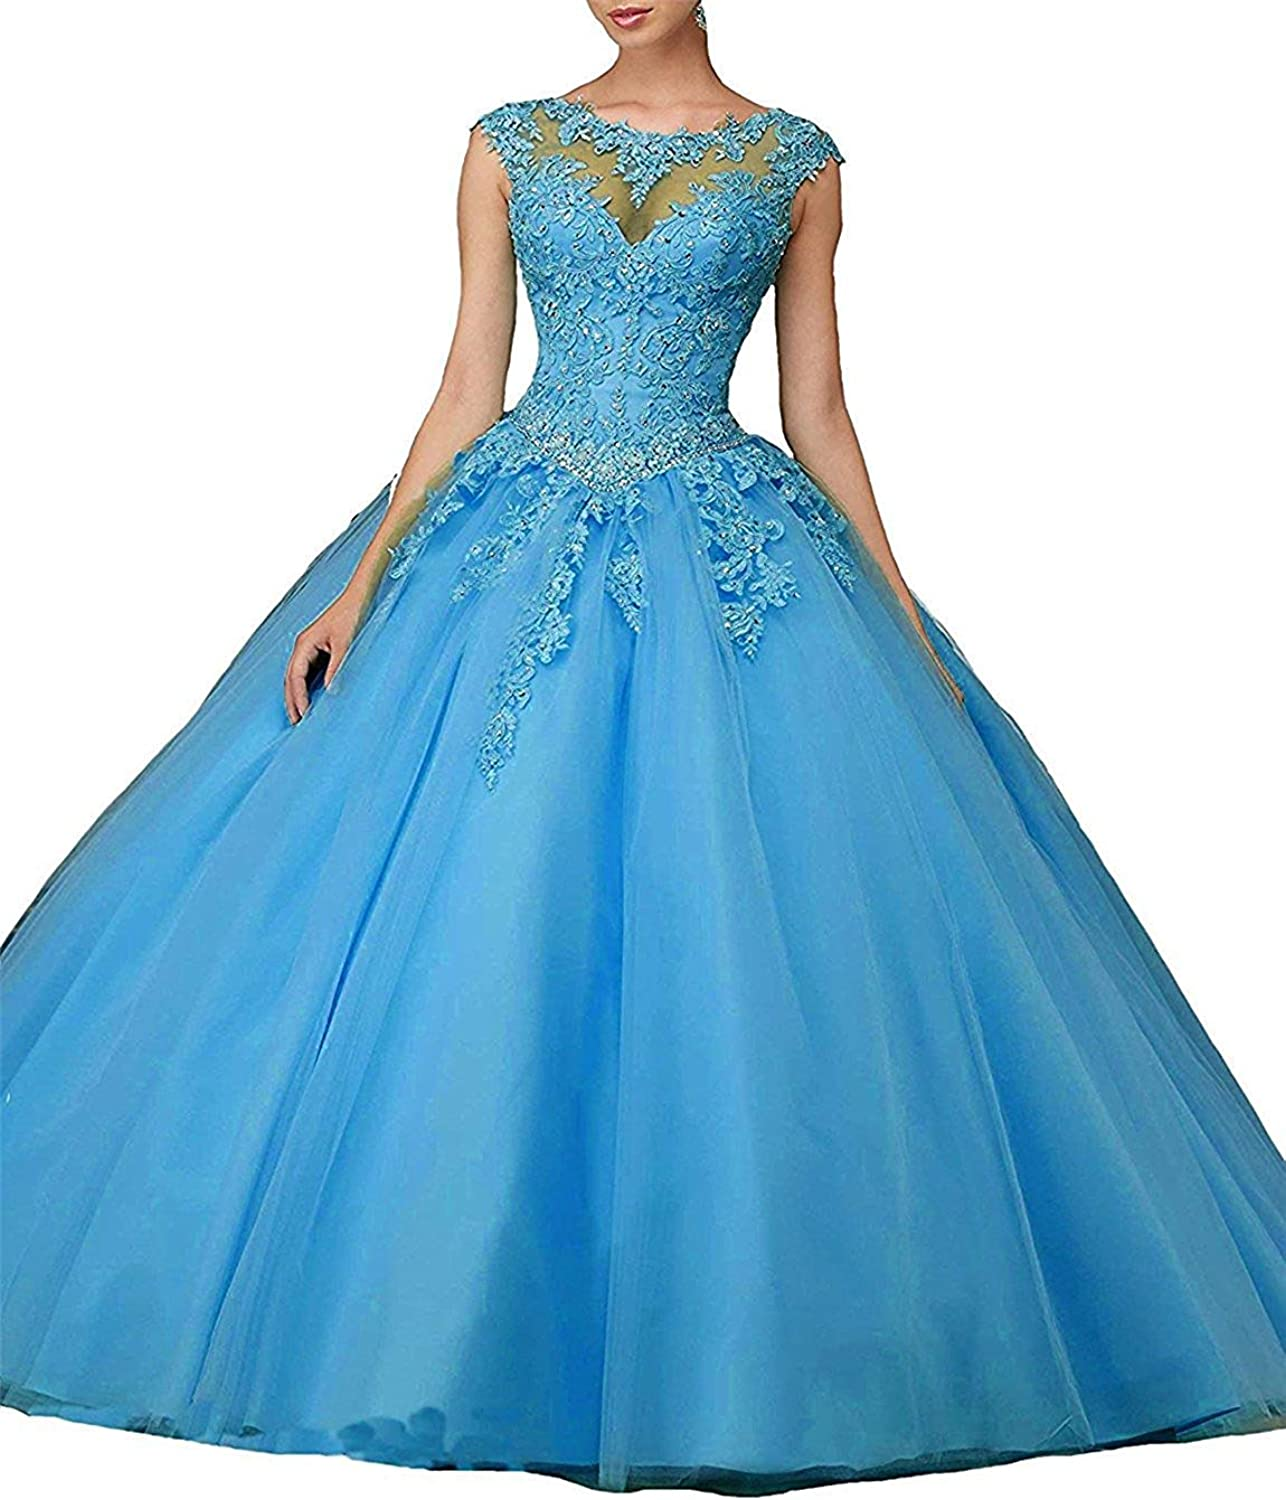 Sulidi Women's Boat Neck Floor Length Lace Beaded Sweet 16 Ball Gowns Quinceanera Dresses C167